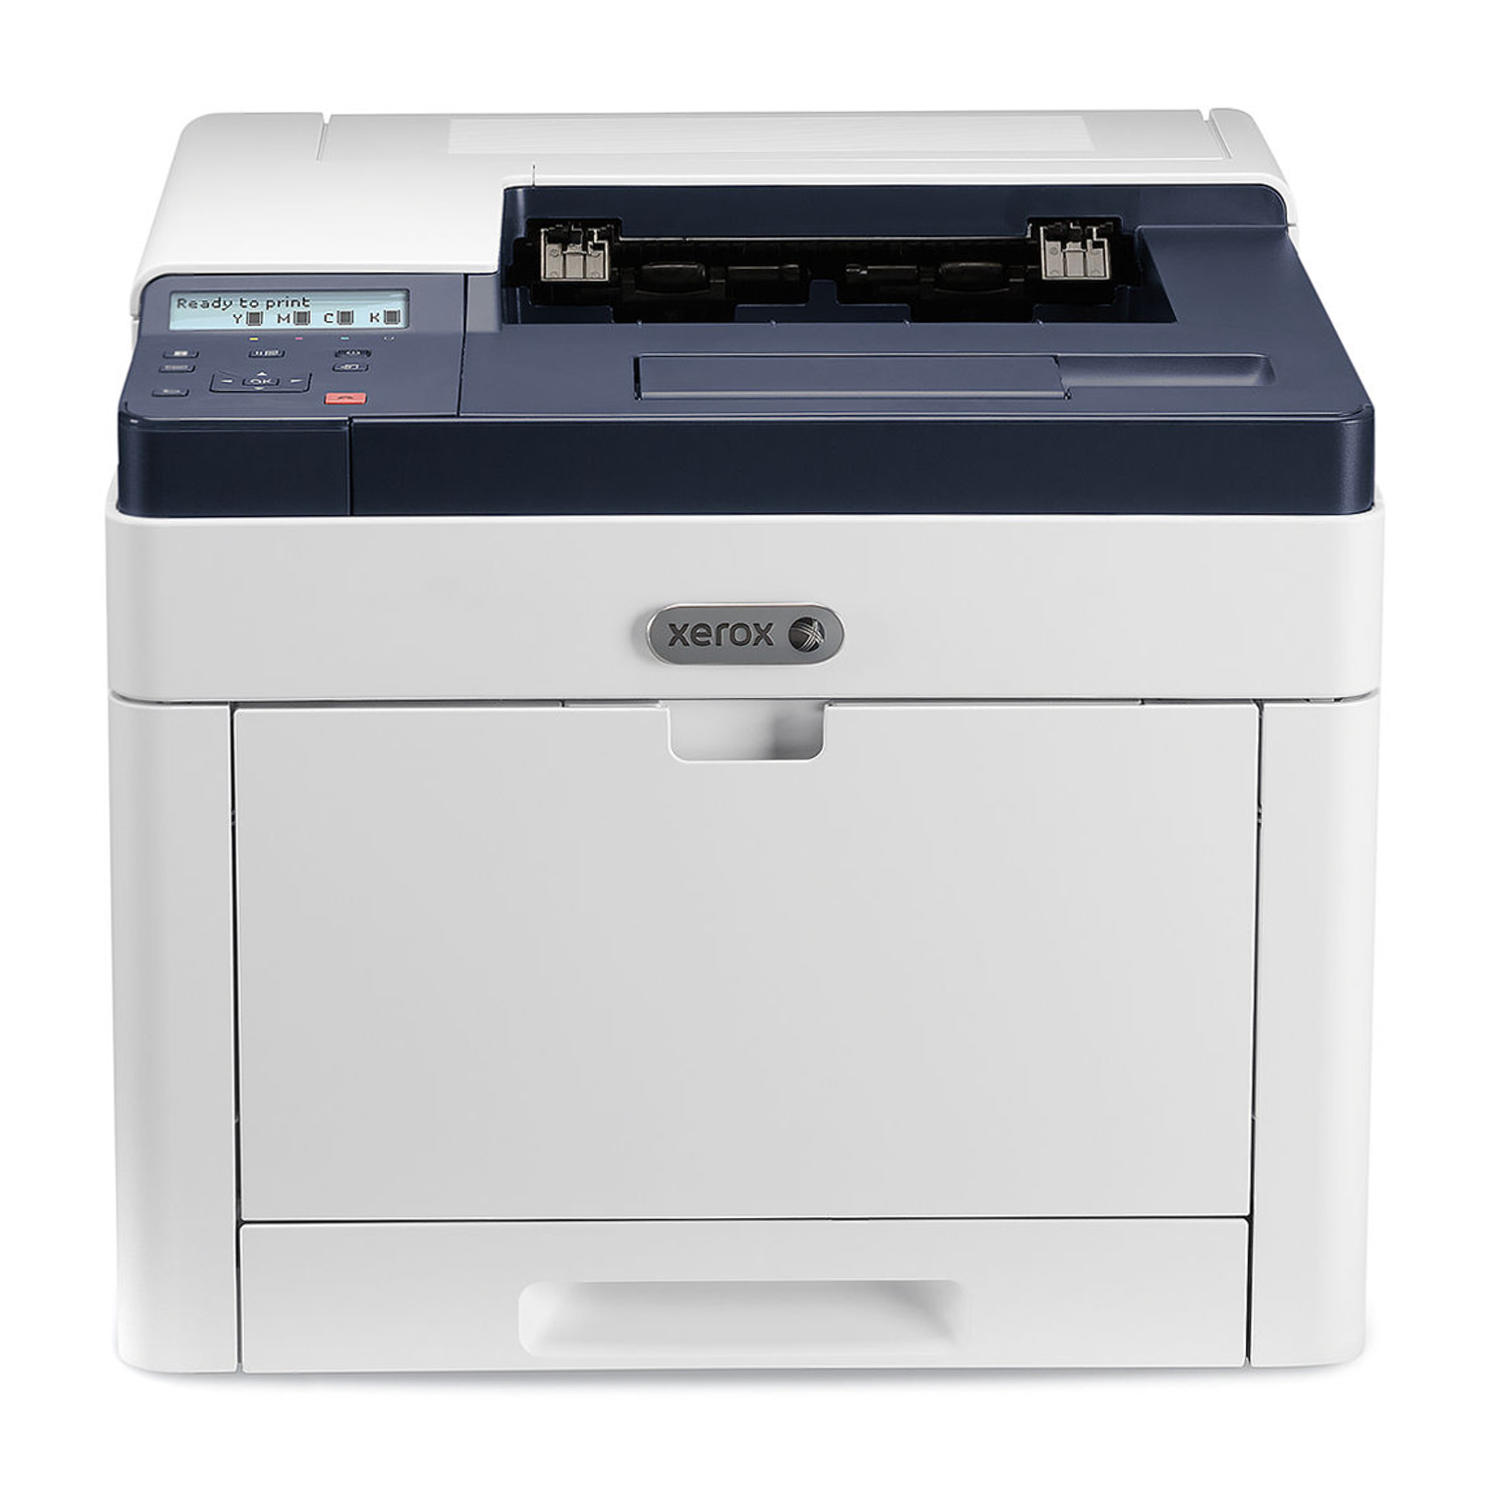 Xerox Phaser 6510/DNI Single-Function Color Laser Printer (Phaser 6510)